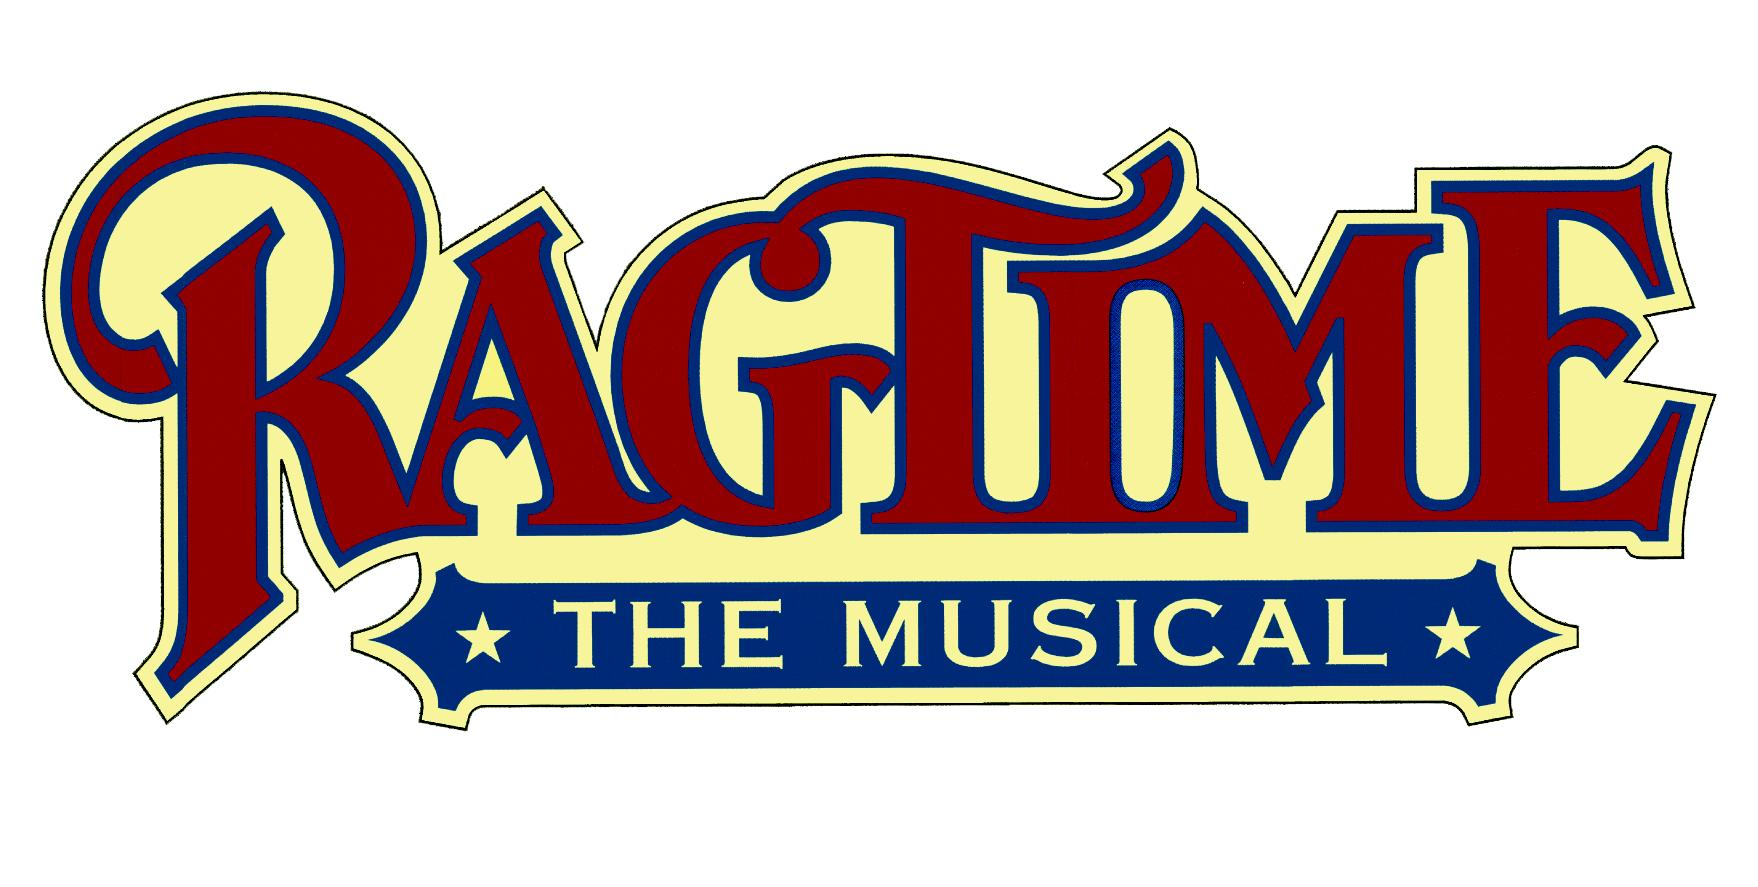 ragtime music Well done performances of ragtime music that are worth a listen.